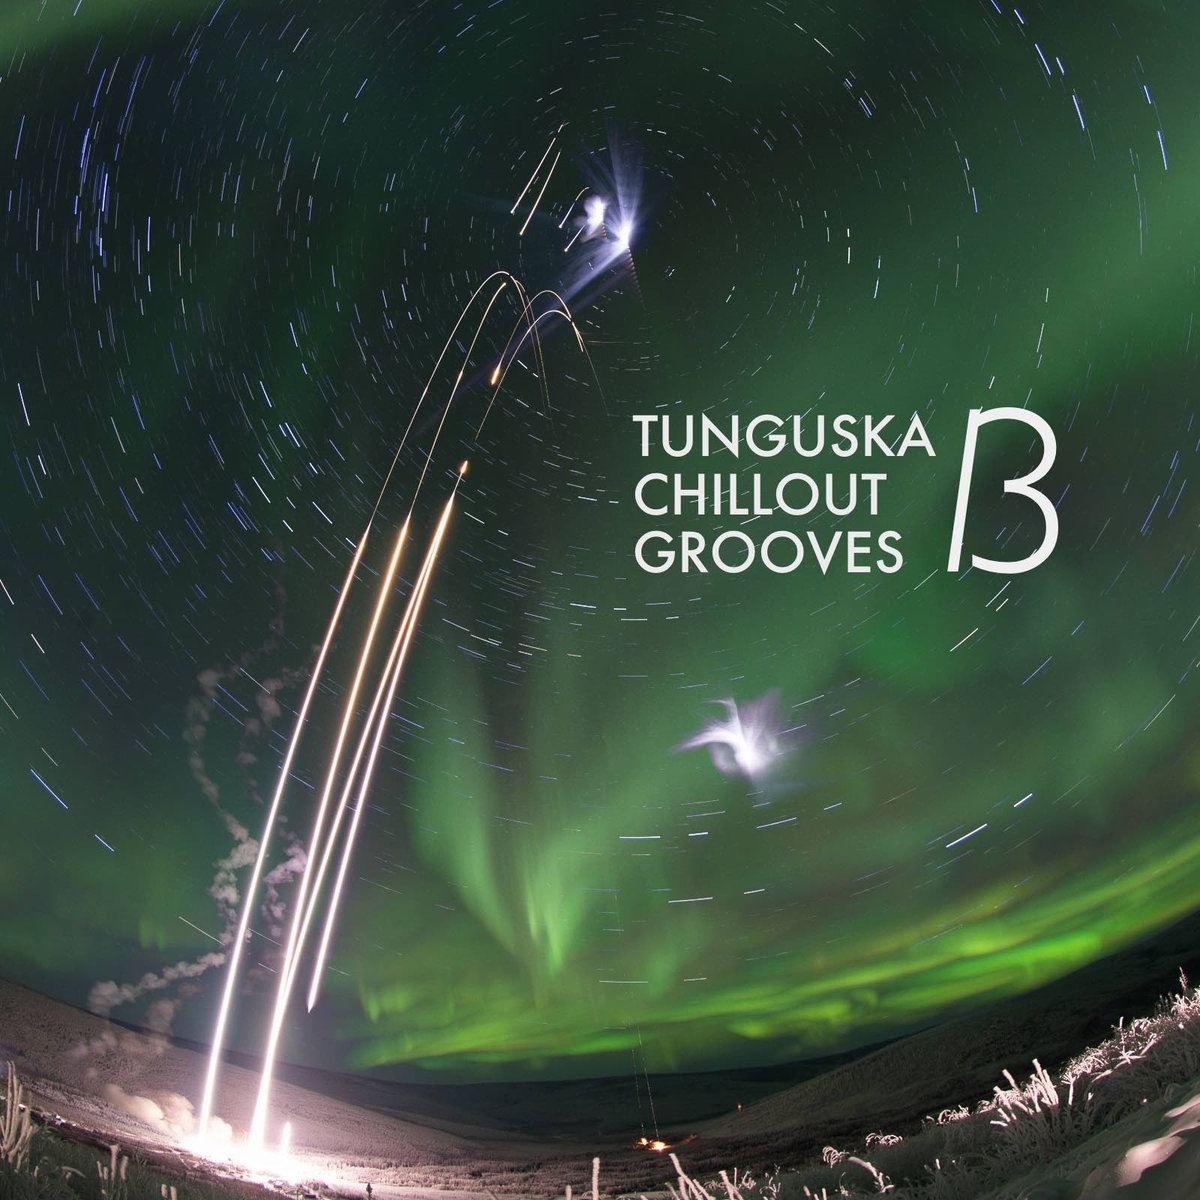 Tunguska Chillout Grooves - Volume 13 (artwork)